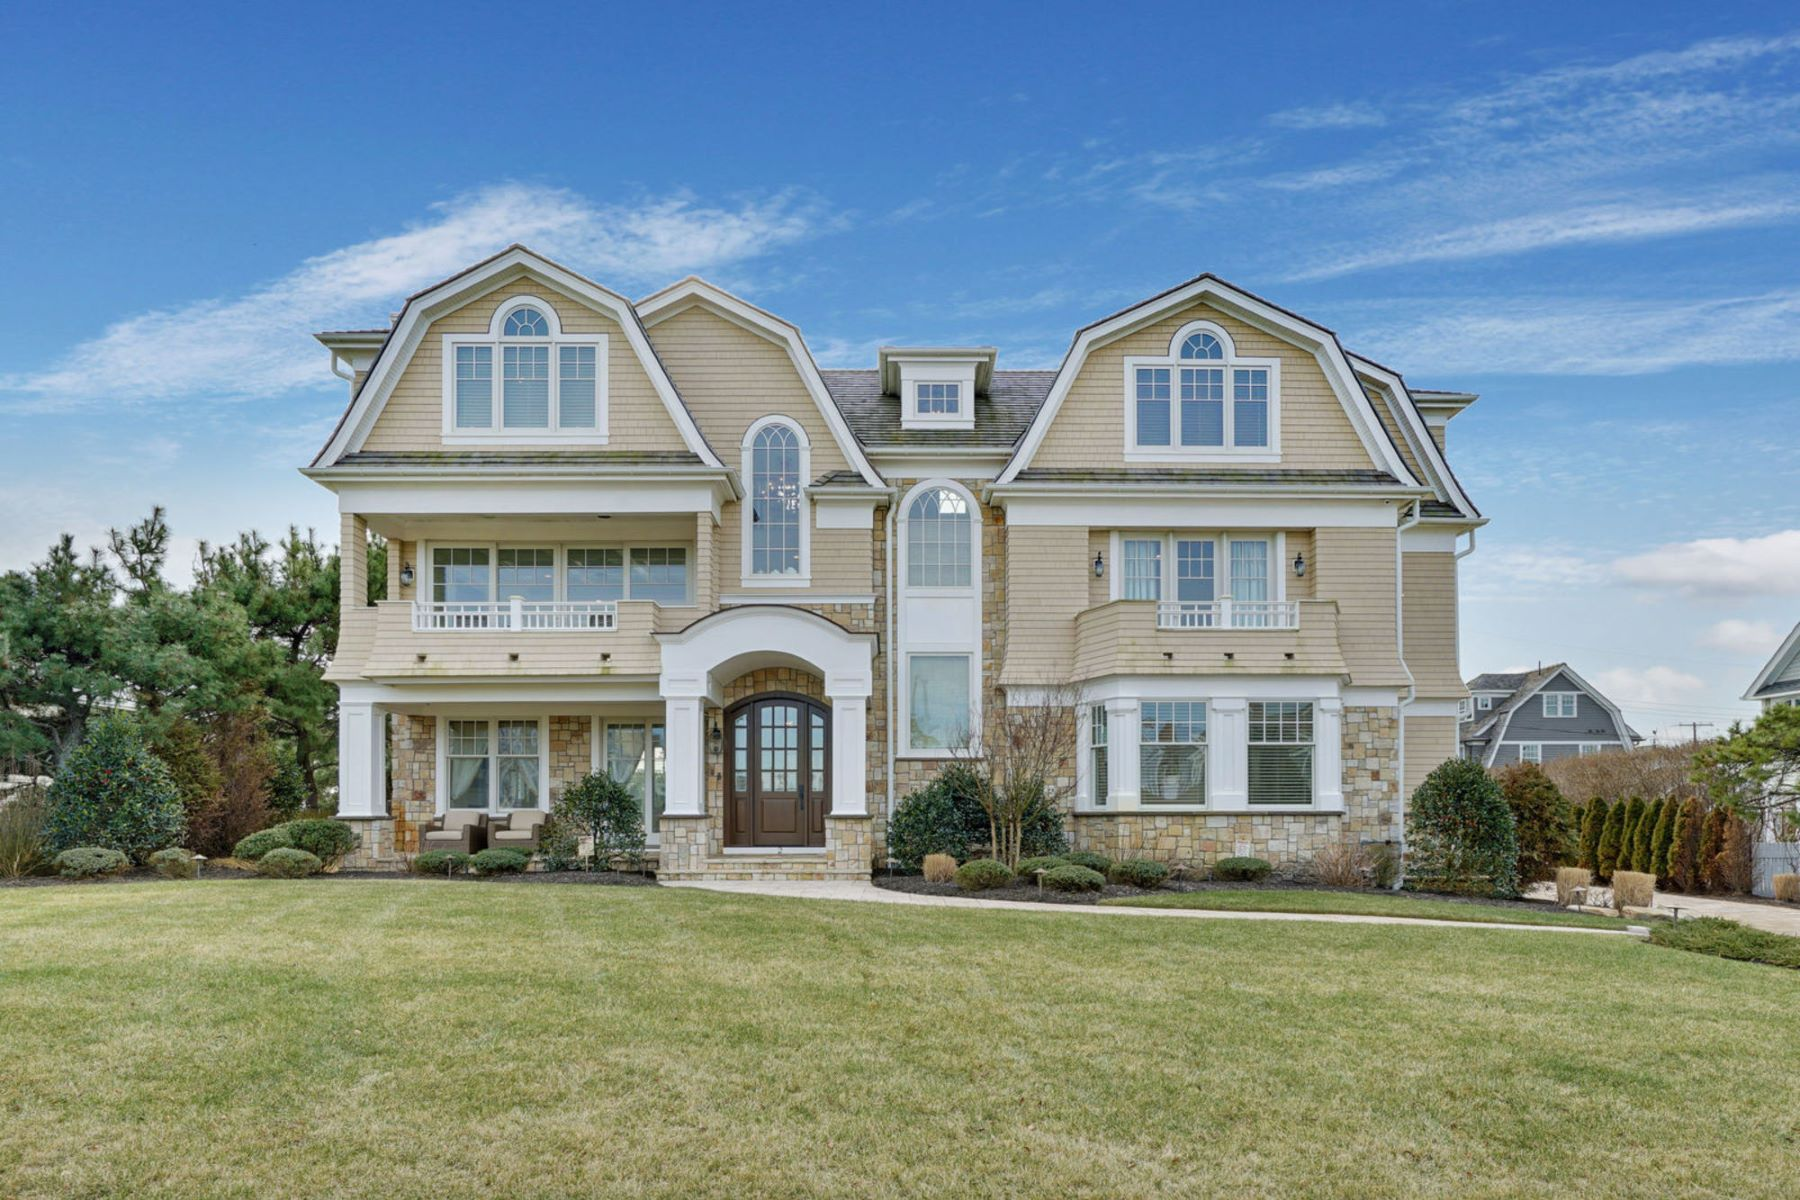 Maison unifamiliale pour l Vente à Perfection Knows No Boundaries 2 Neptune Place, Sea Girt, New Jersey 08750 États-Unis